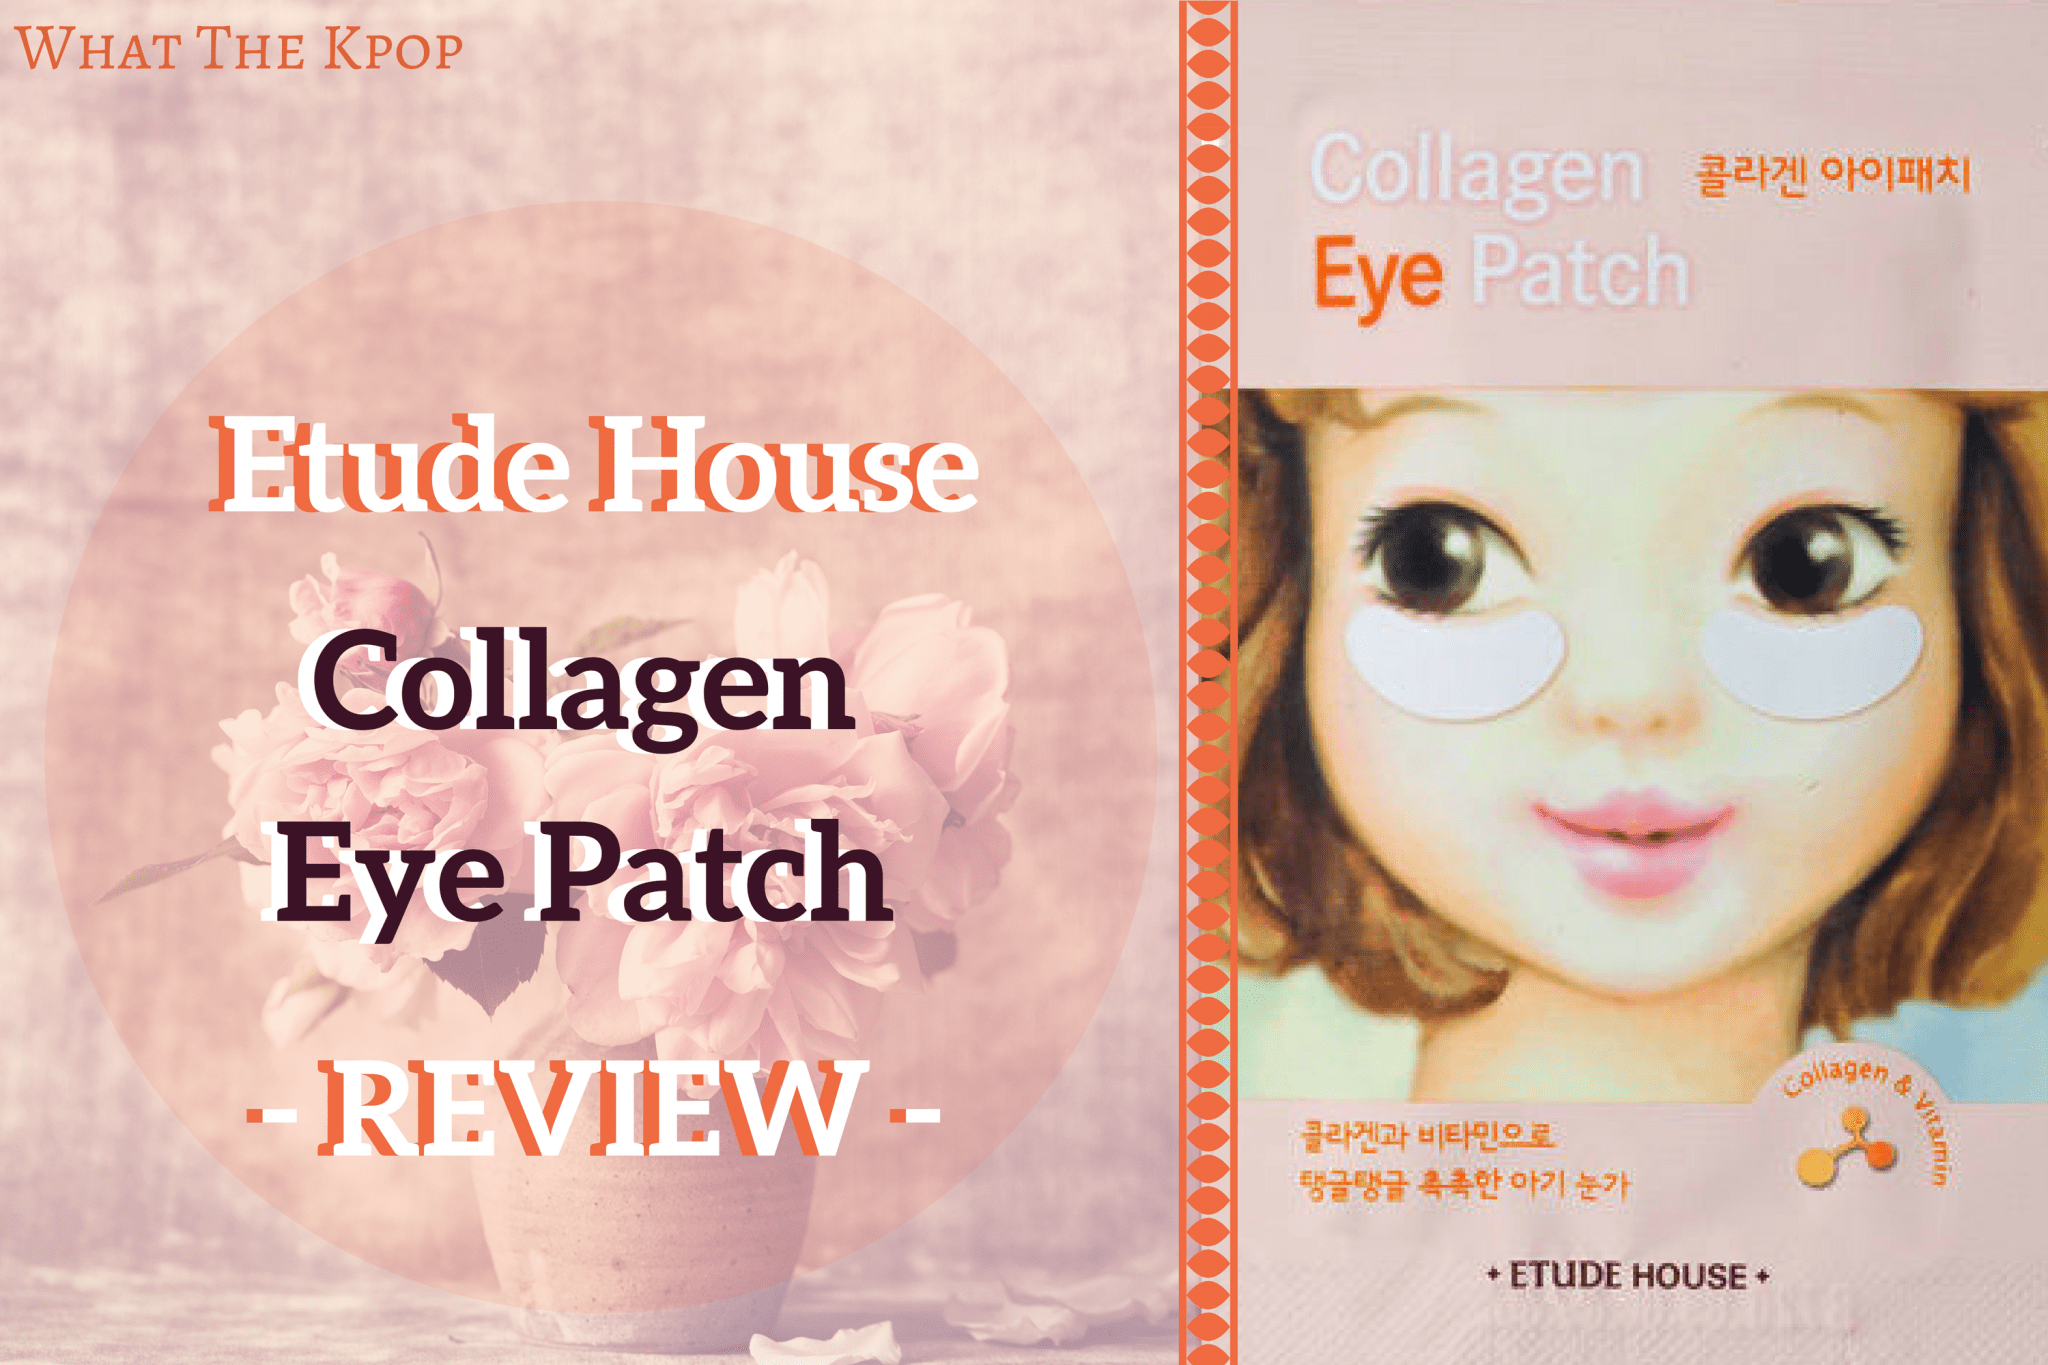 WTK REVIEW: Etude House Collagen Eye Patch